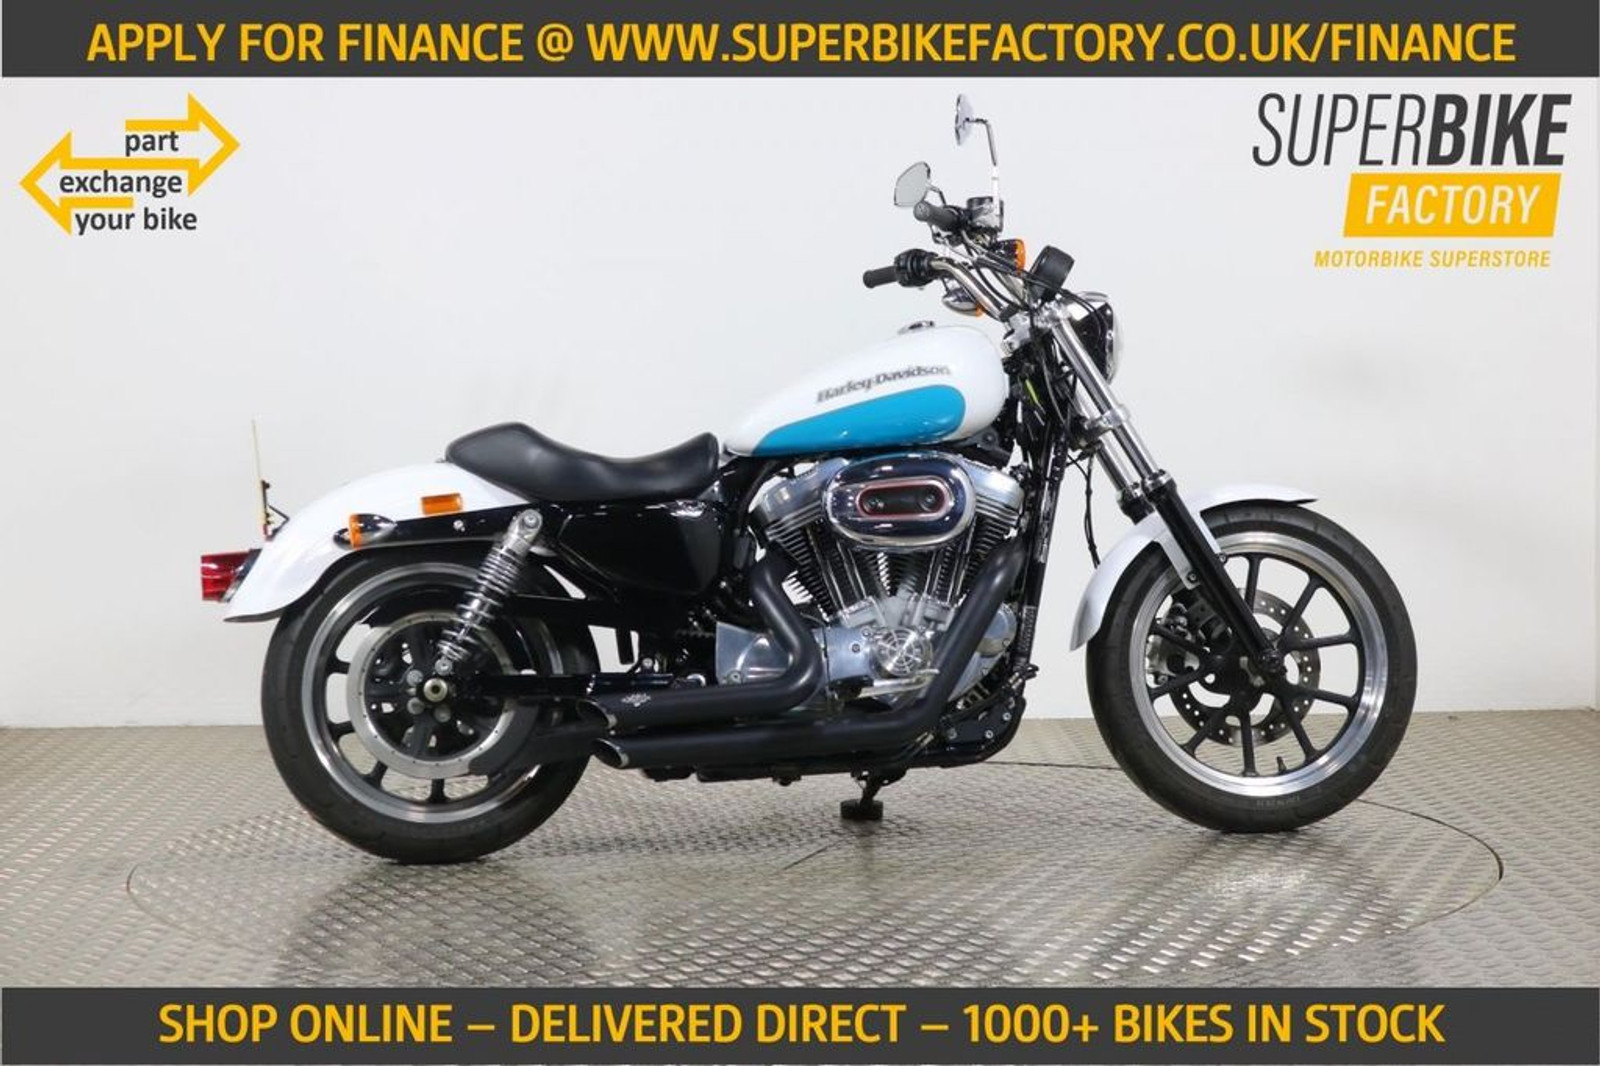 2017 Harley Davidson Sportster Xl 883 L Superlow Blue With 2527 Miles Used Motorbikes Dealer Macclesfield Cheshire The Superbike Factory